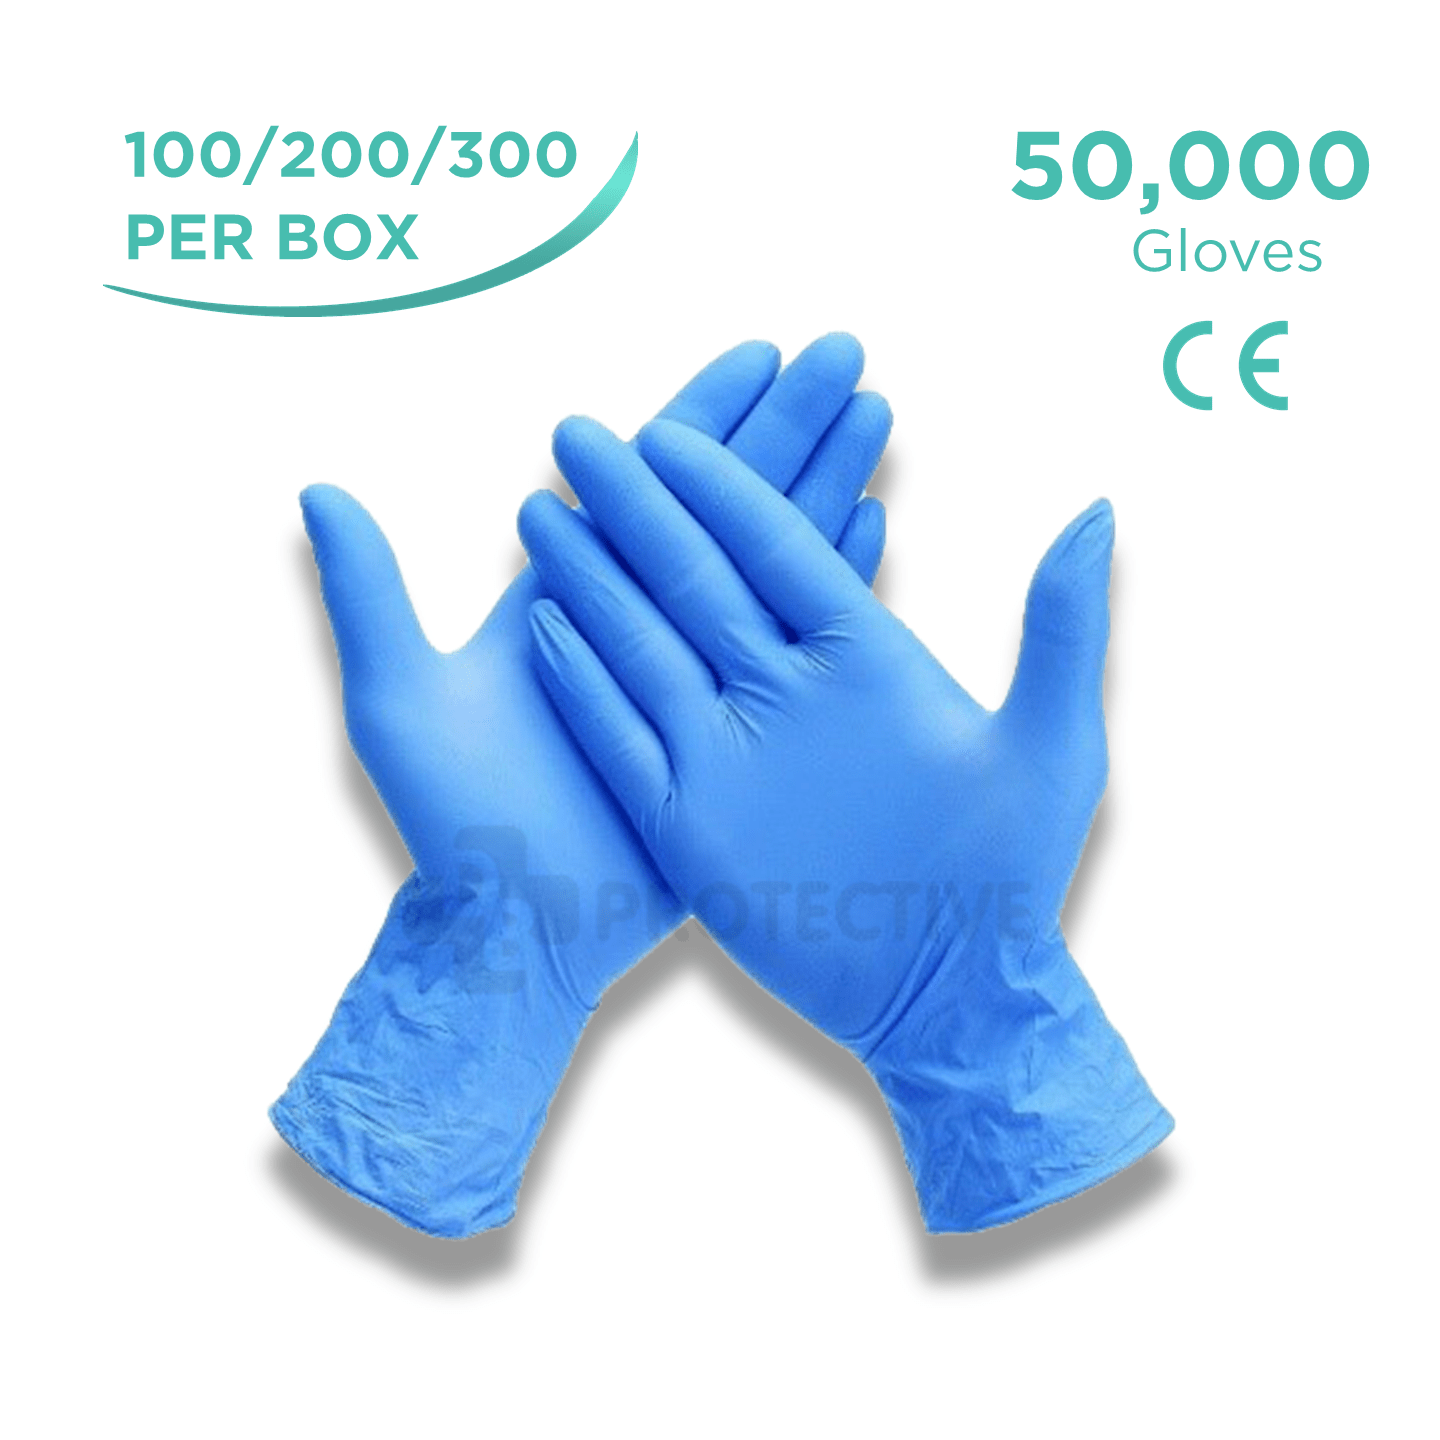 Blue Nitrile Gloves - Pack of 50,000 - USA Medical Supply - DB Protective